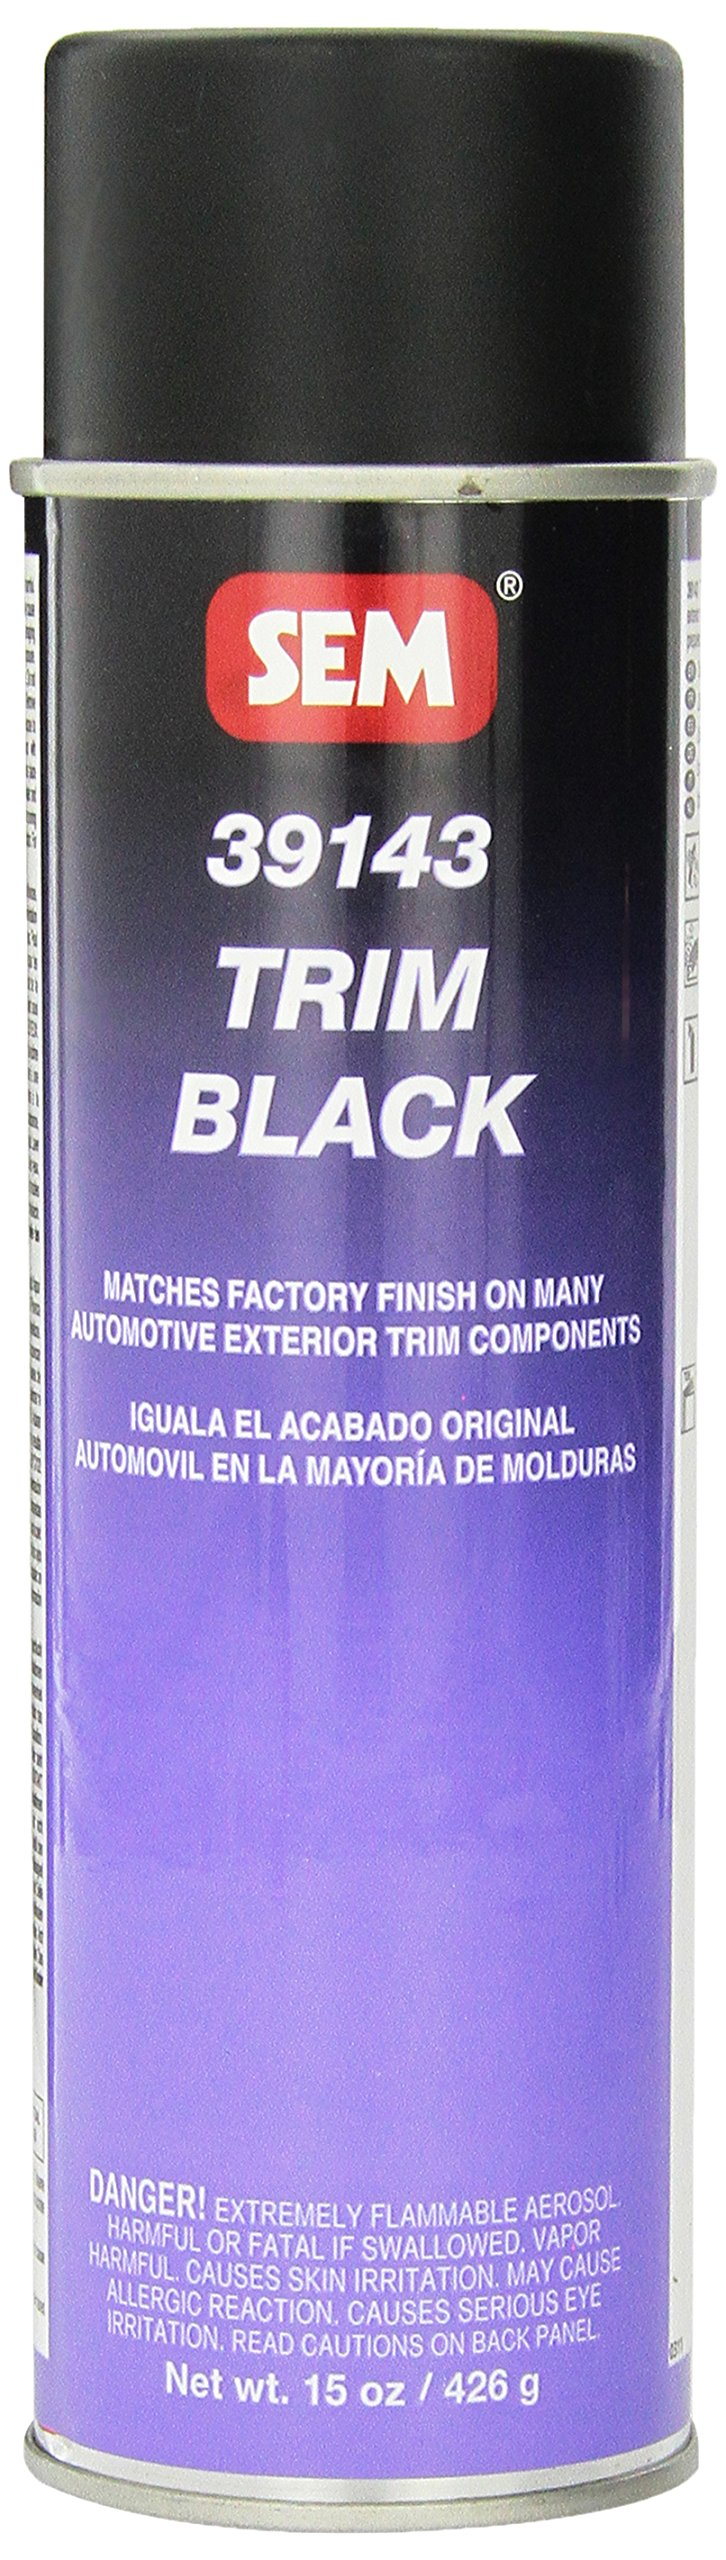 SEM 39143 Trim Black Aerosol - 15 oz.